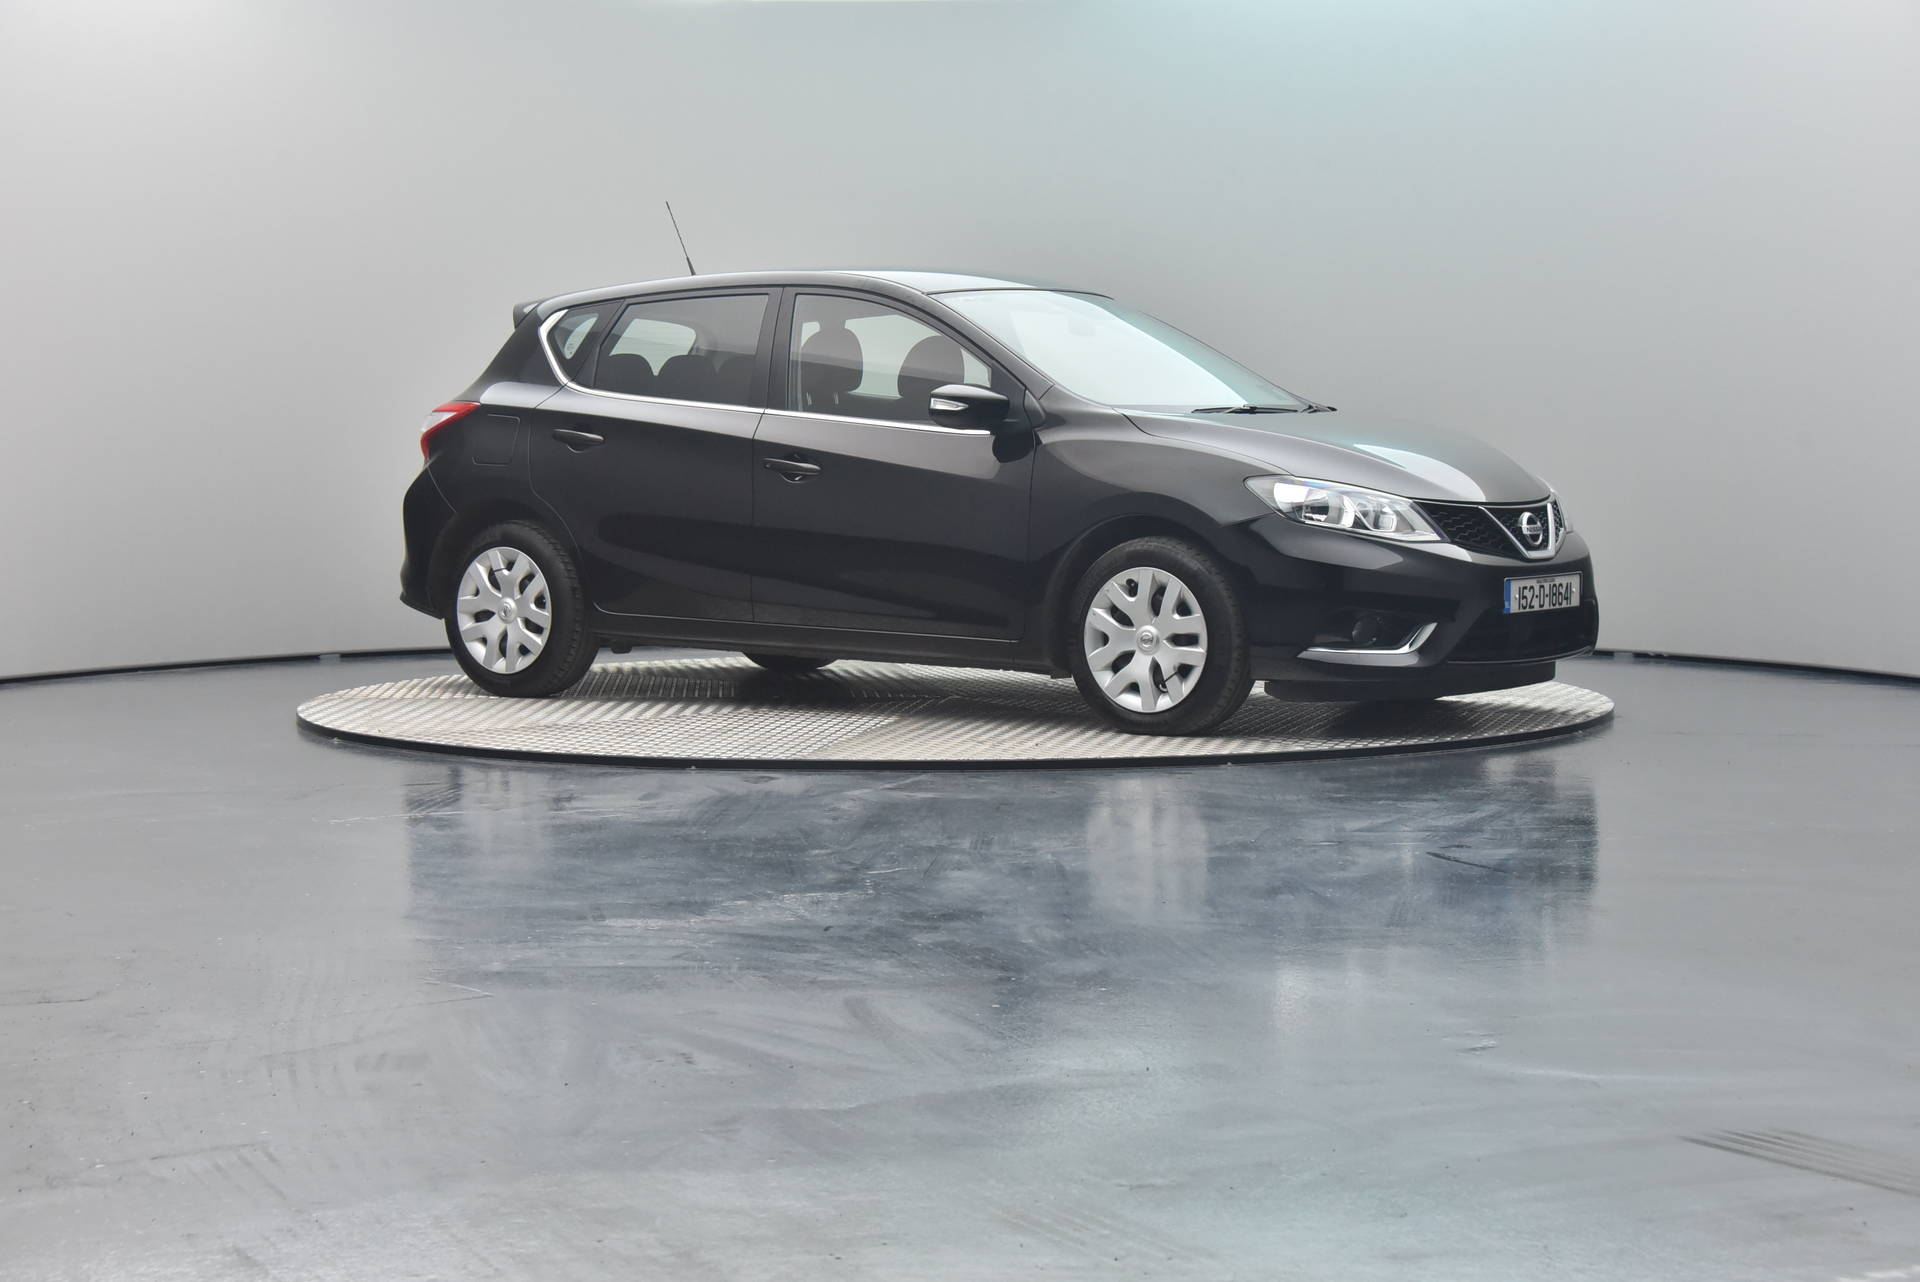 Nissan Pulsar 1.5 Dci Xe, 360-image35